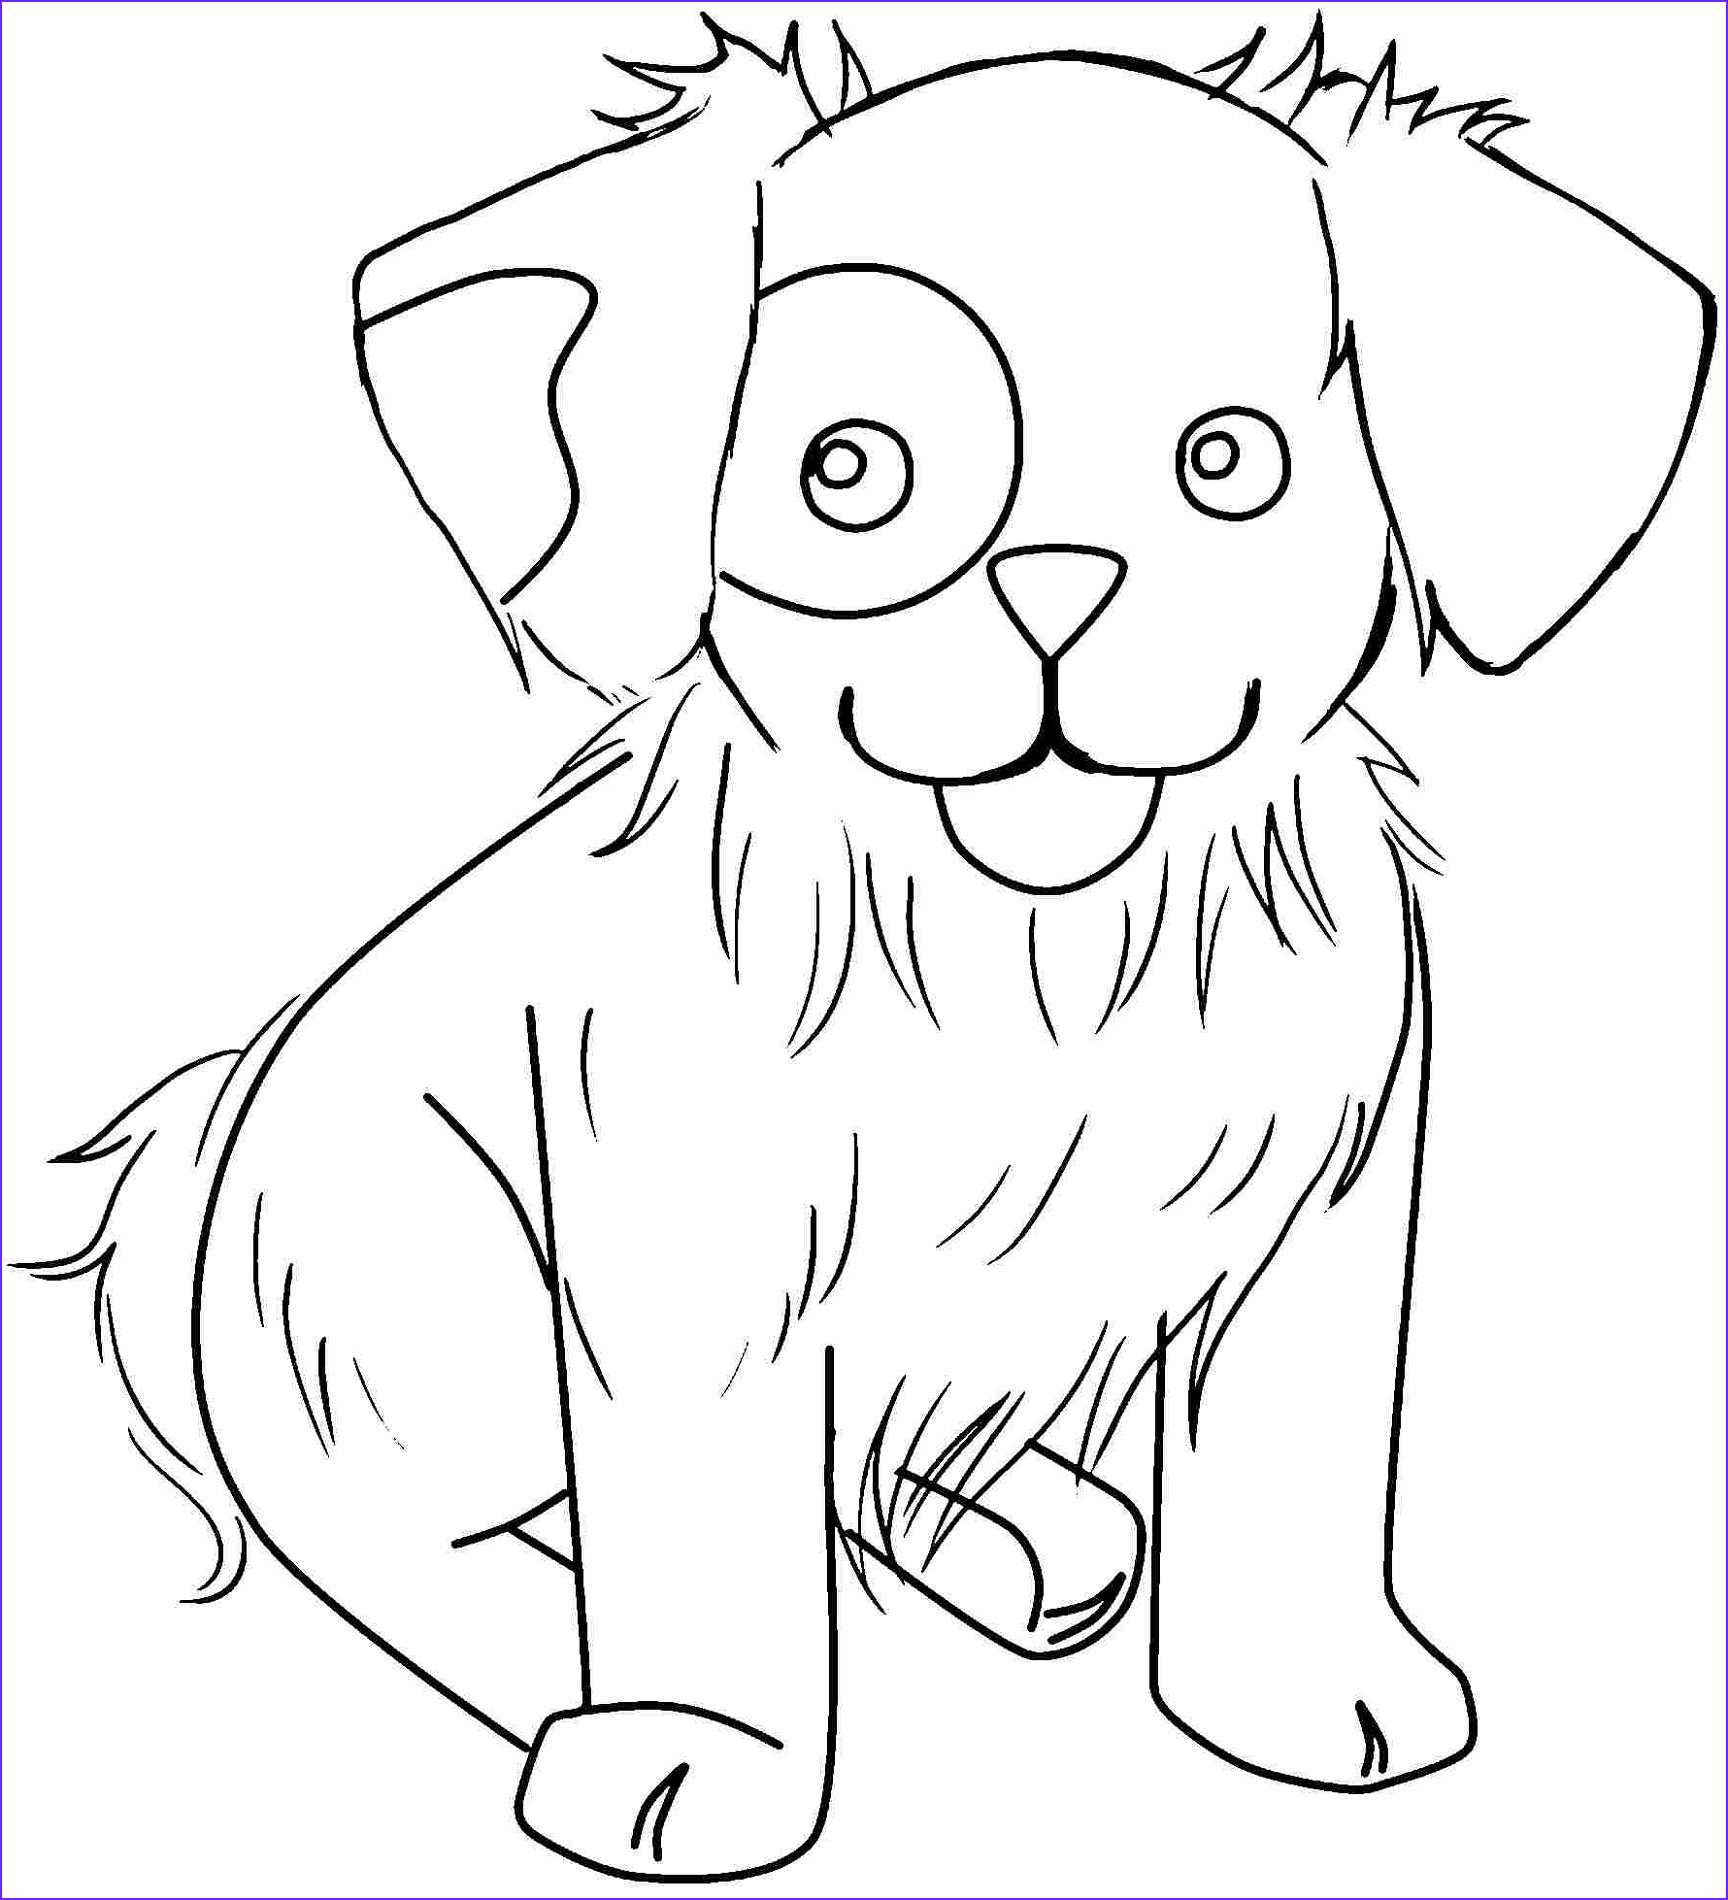 crayola free coloring pages awesome